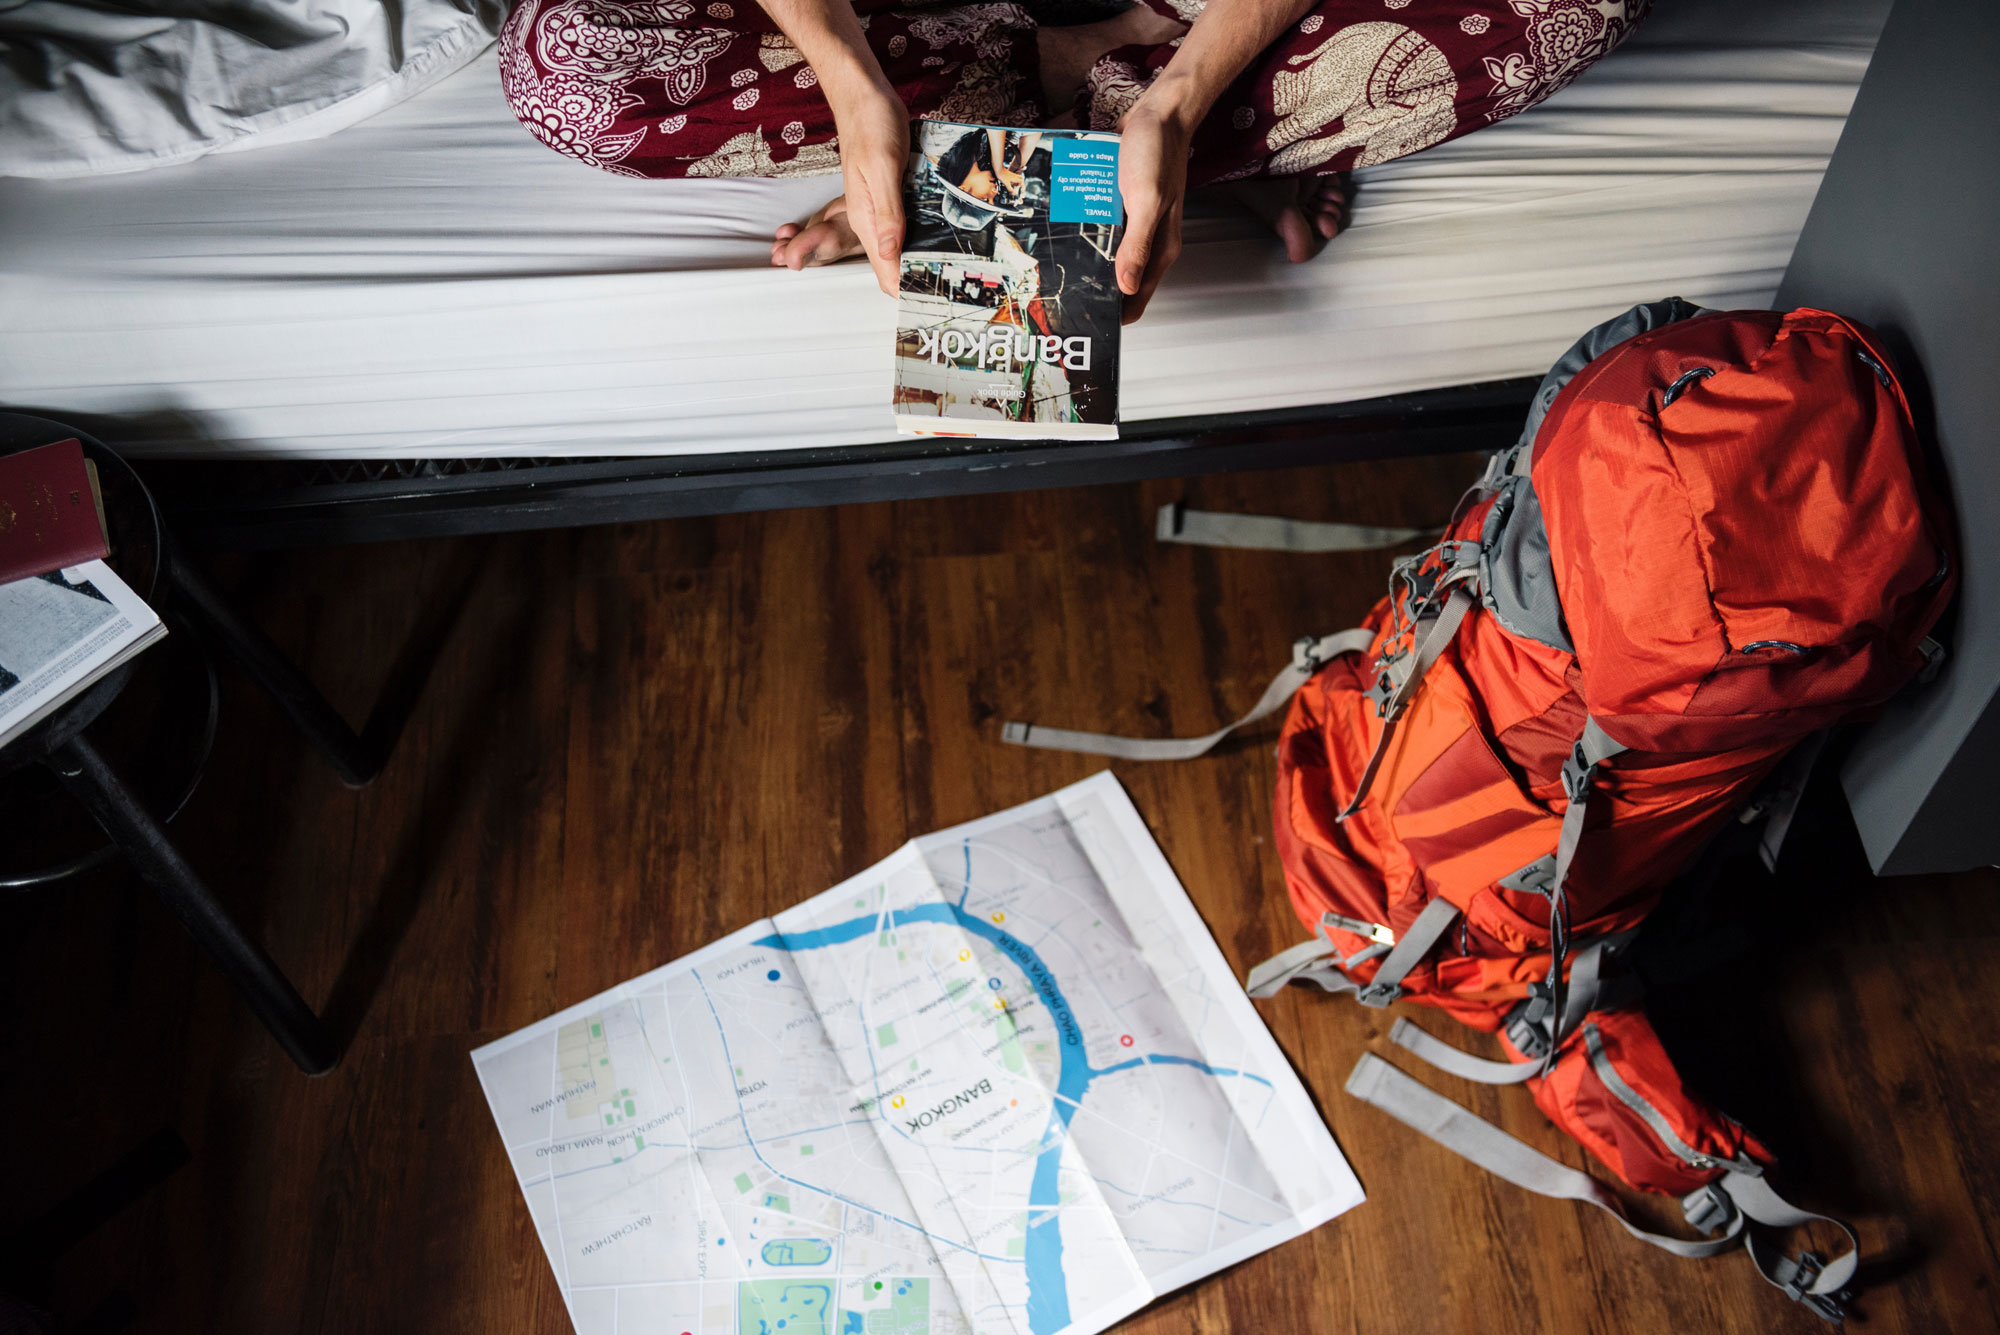 Someone on a cozy hostel bed reads a city guide and map next to their backpack.